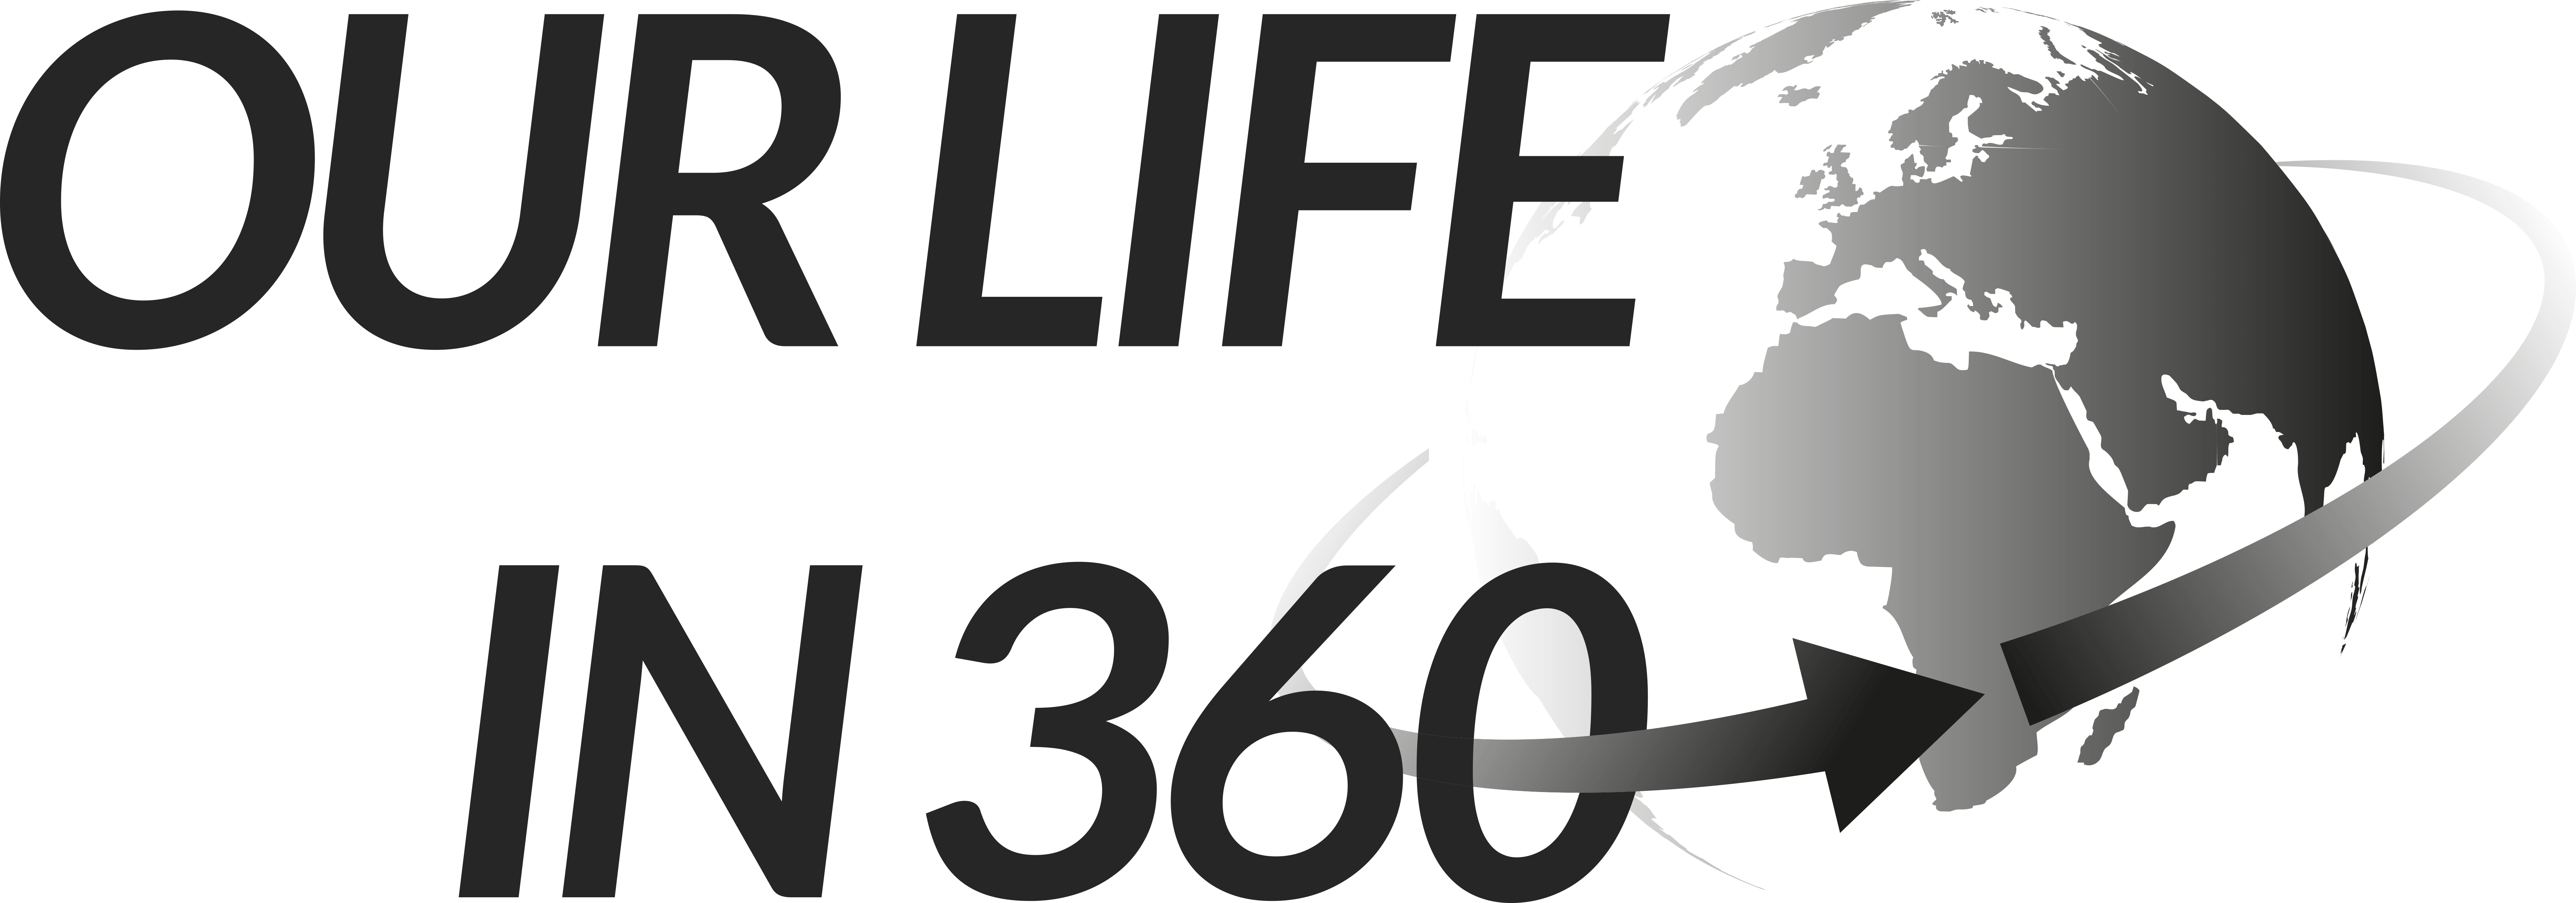 Our Life in 360